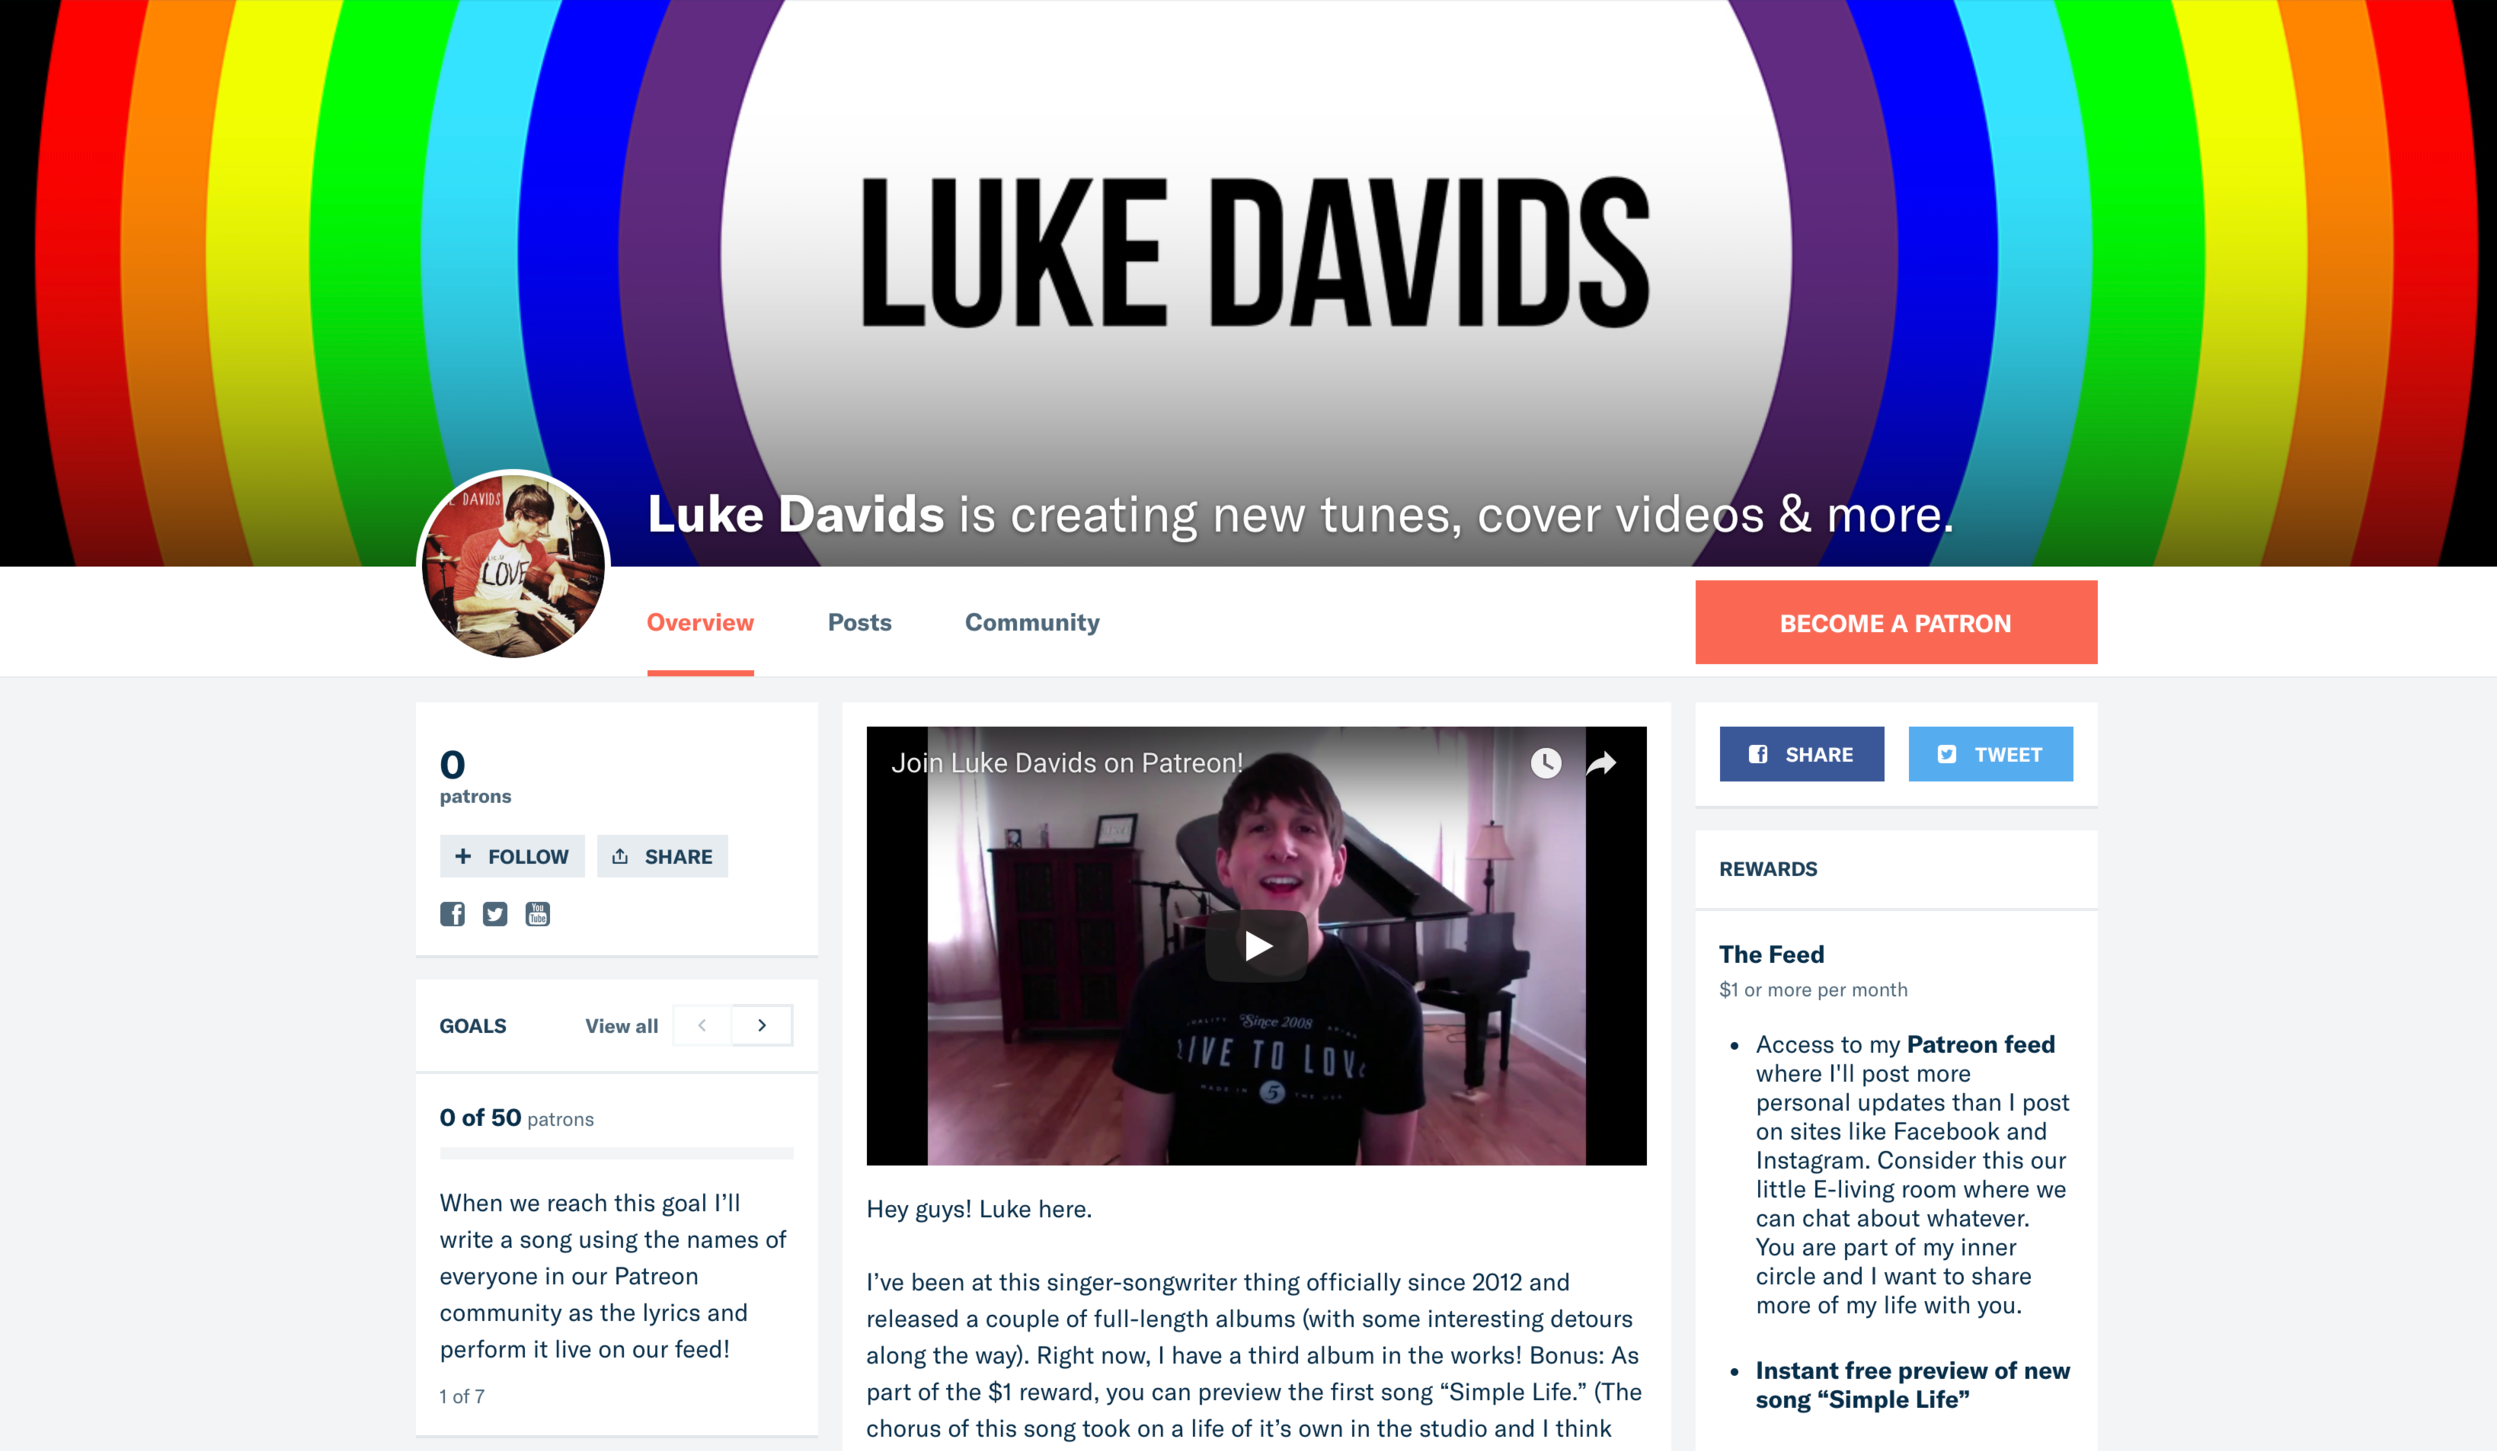 Luke Davids Patreon Page